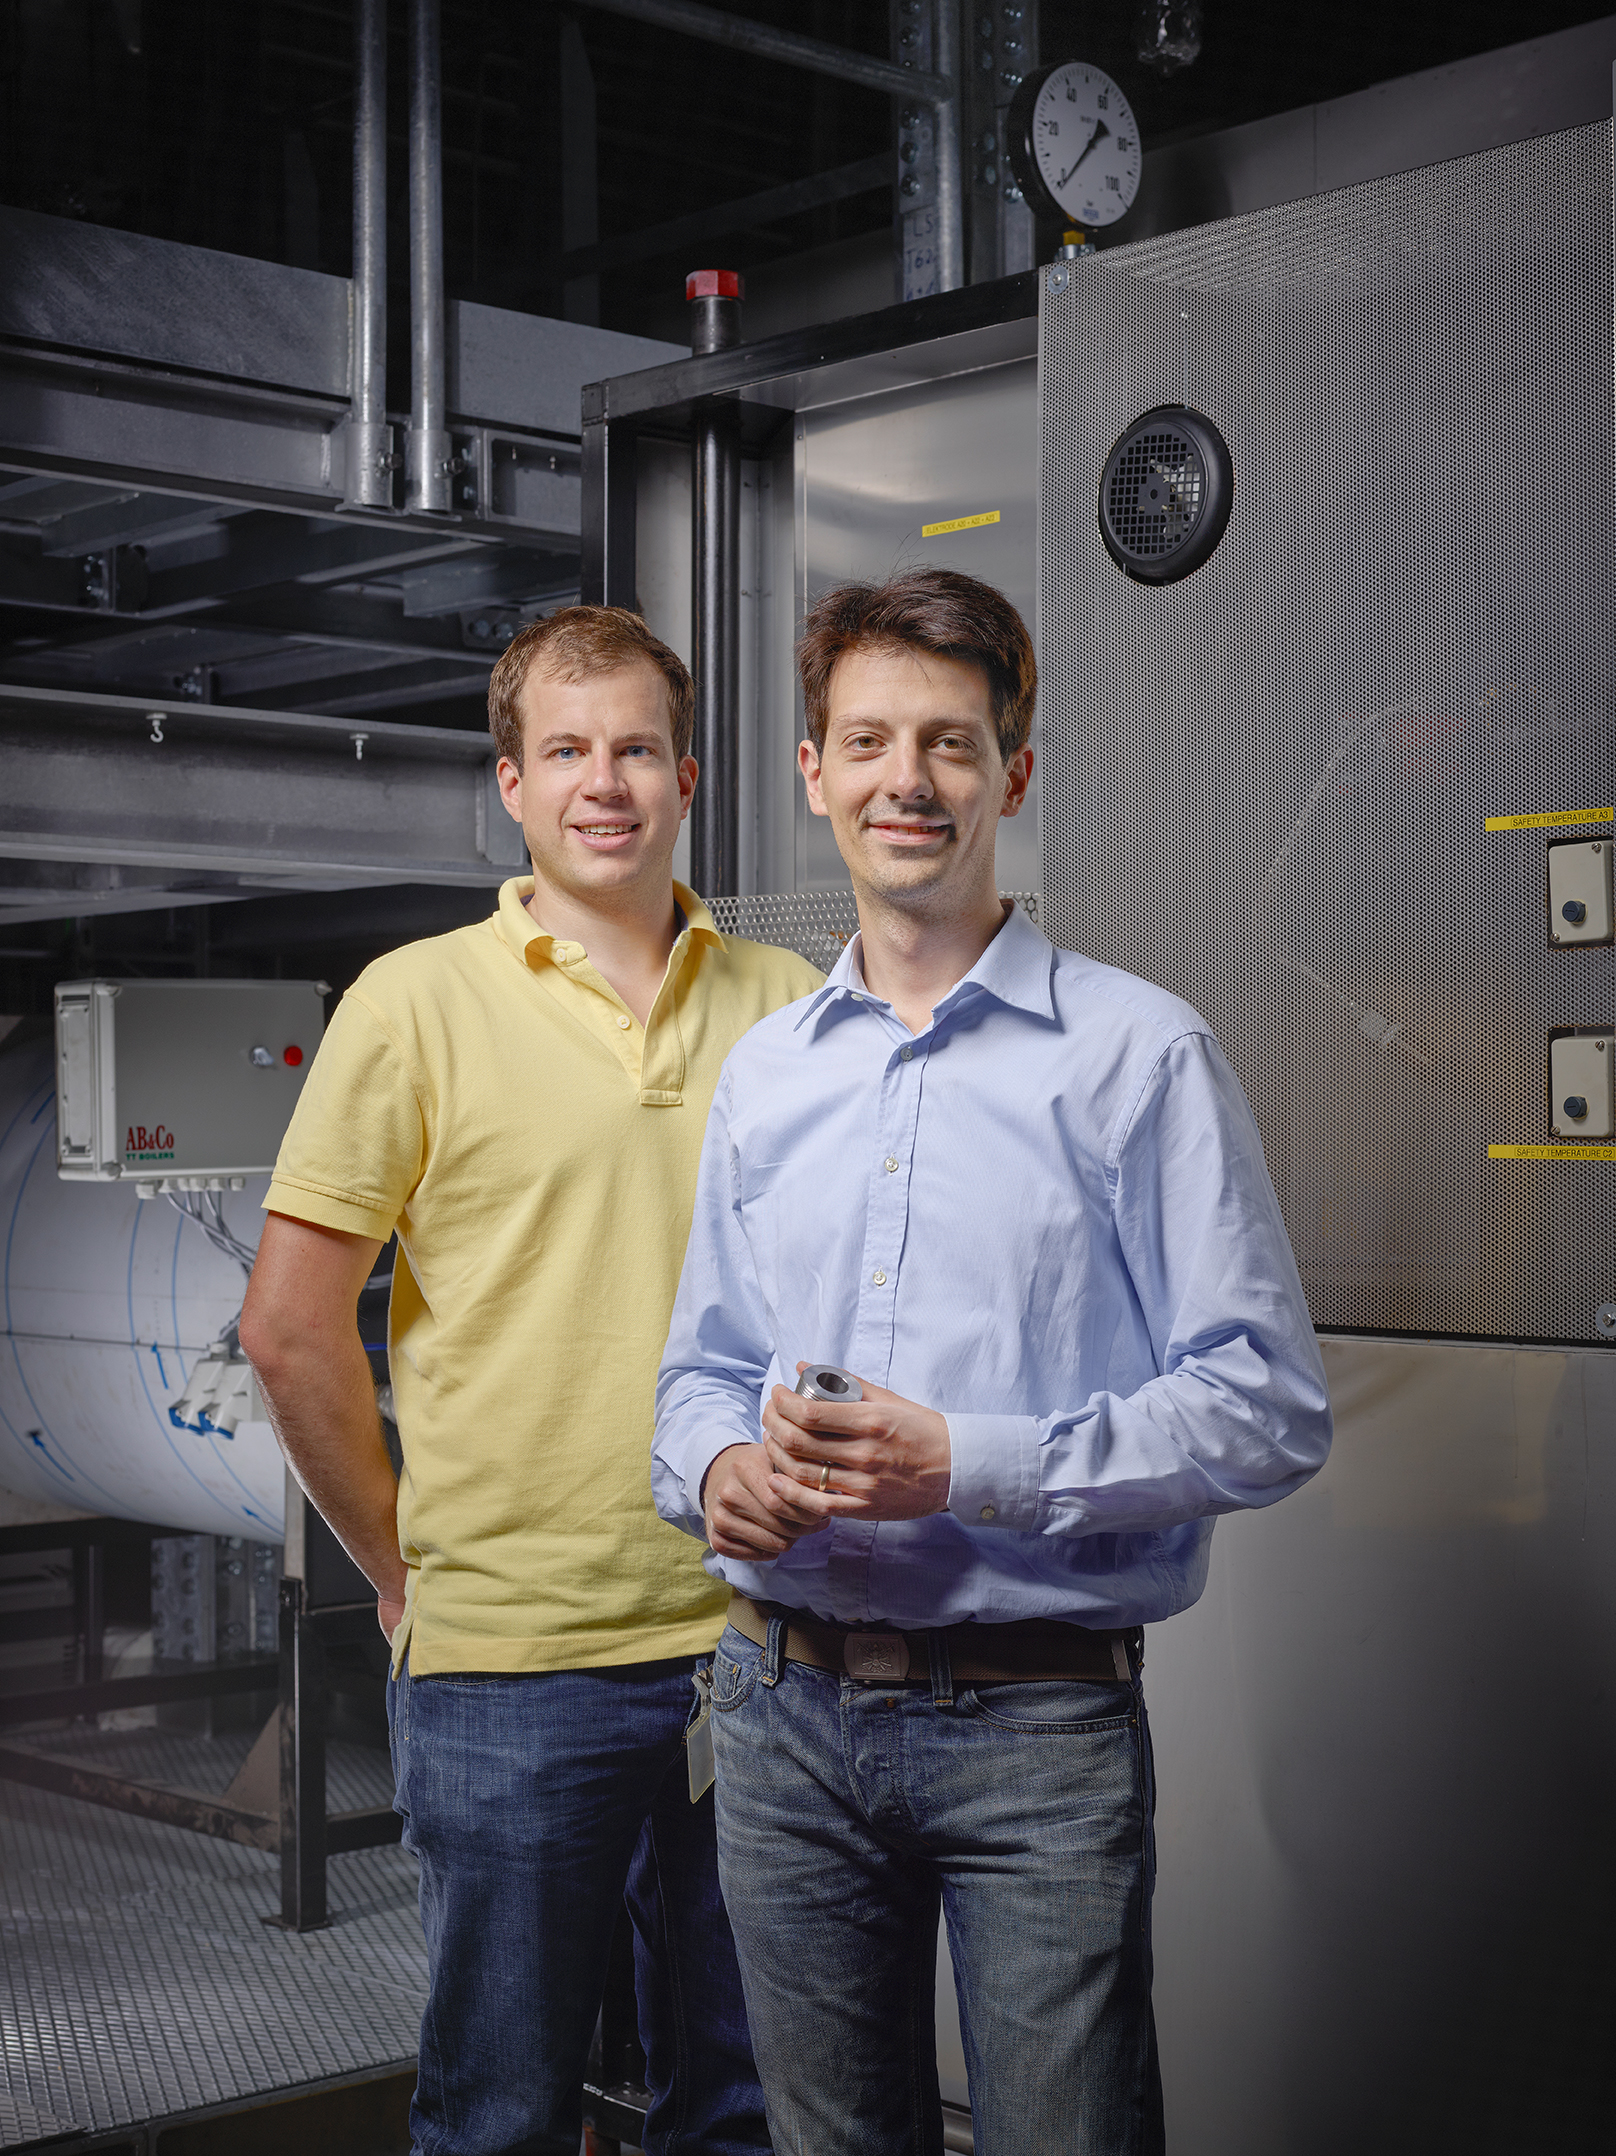 PSI researcher Markus Obrist and Giacomo Colmegna engineer with Ticino based company Casale study efficient processes for the production of basic chemical products.(Photo : Scanderbeg Sauer Photography)